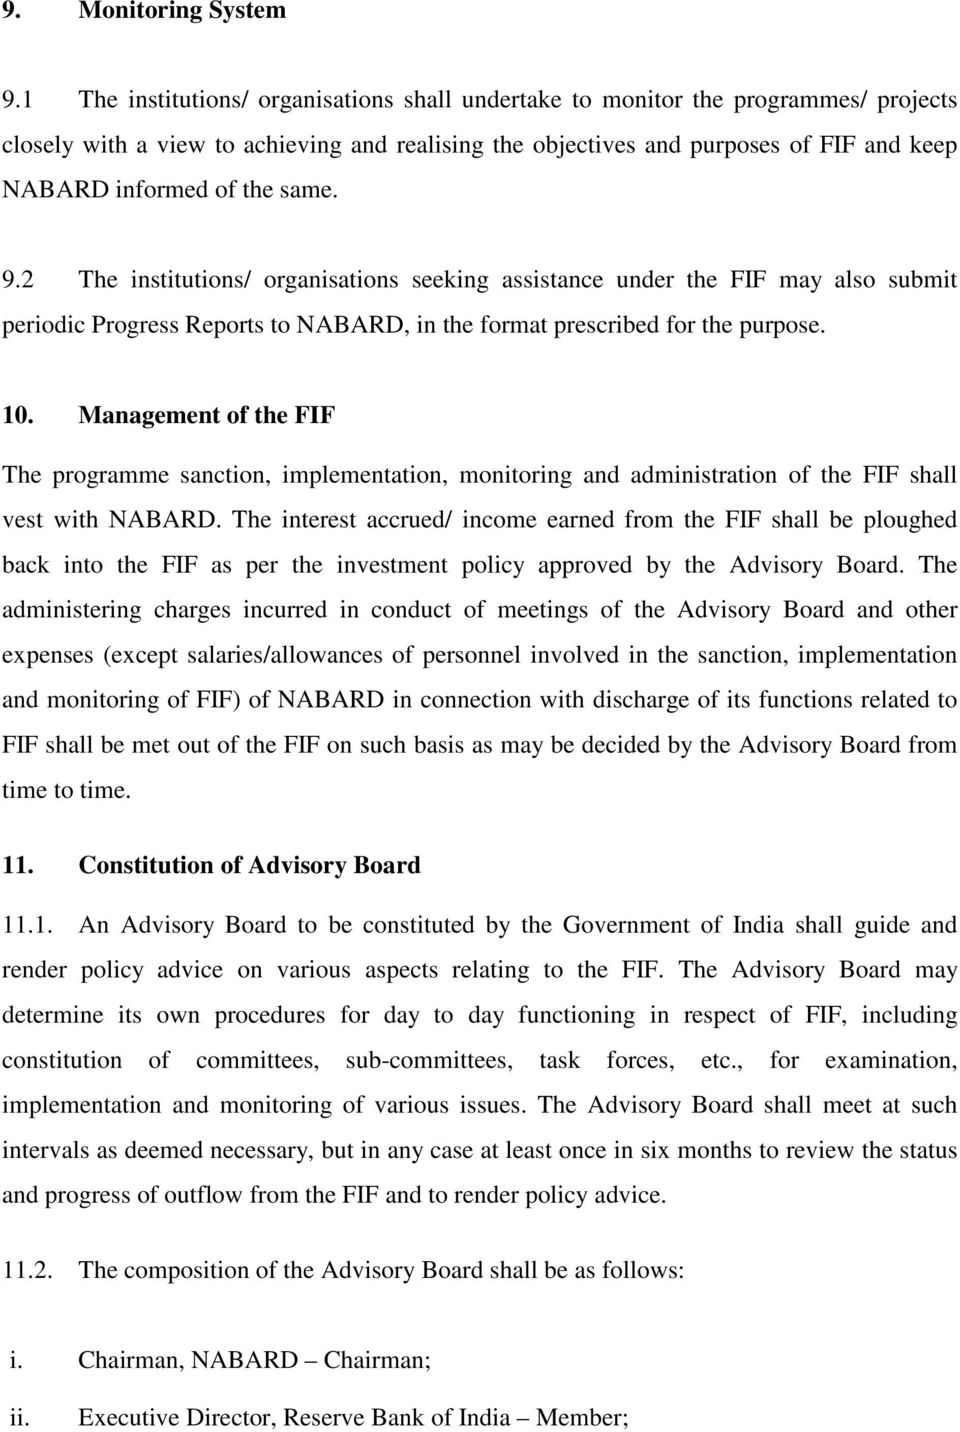 same. 9.2 The institutions/ organisations seeking assistance under the FIF may also submit periodic Progress Reports to NABARD, in the format prescribed for the purpose. 10.